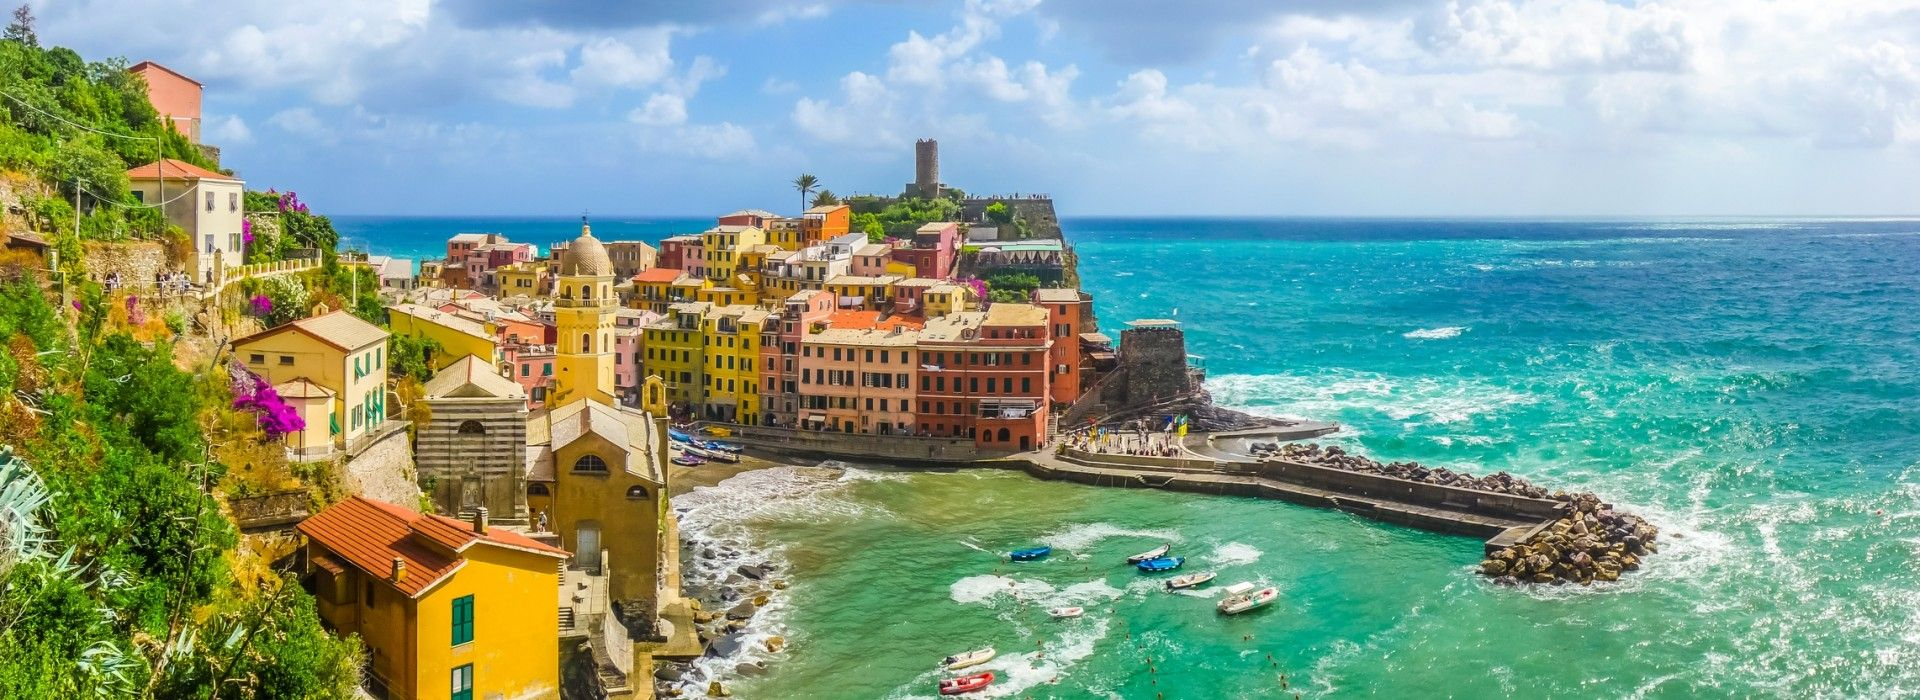 Natural landmarks sightseeing Tours in Italy